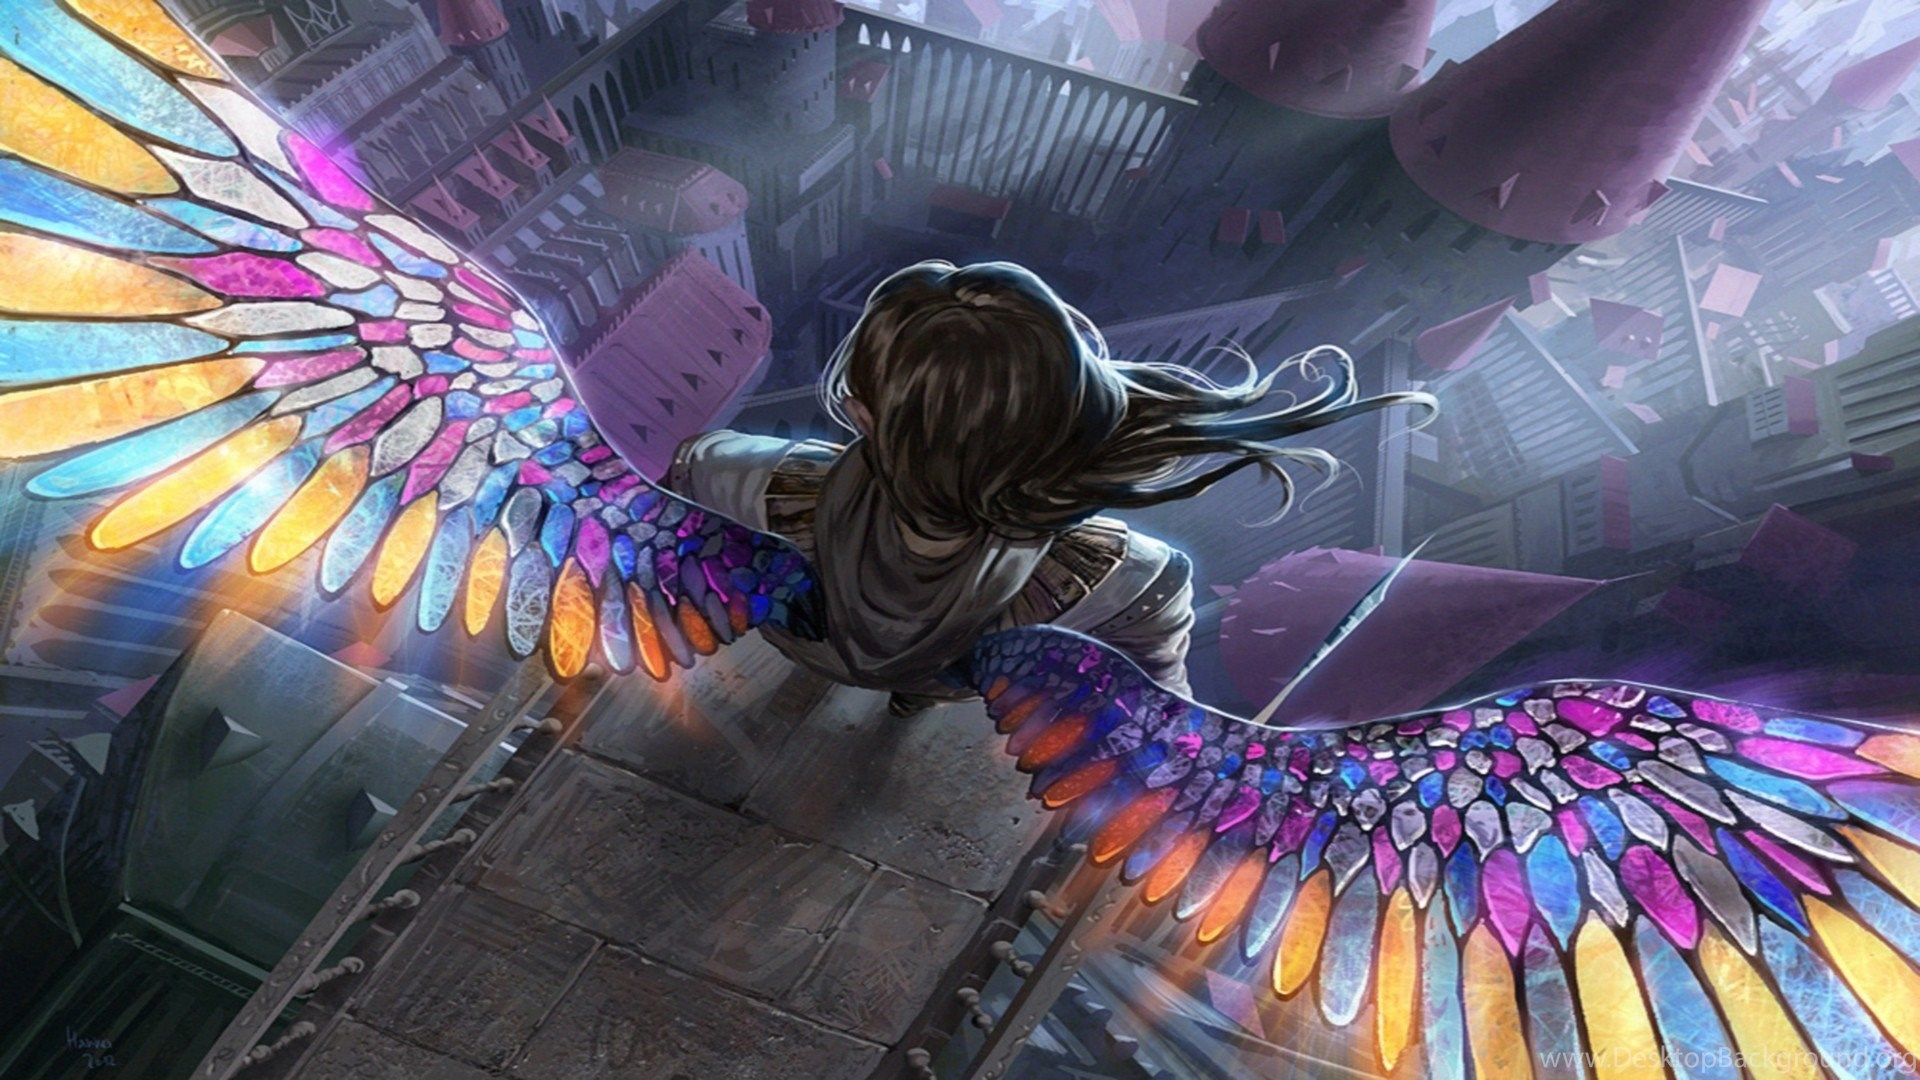 Magic The Gathering Hd Wallpapers Desktop Background